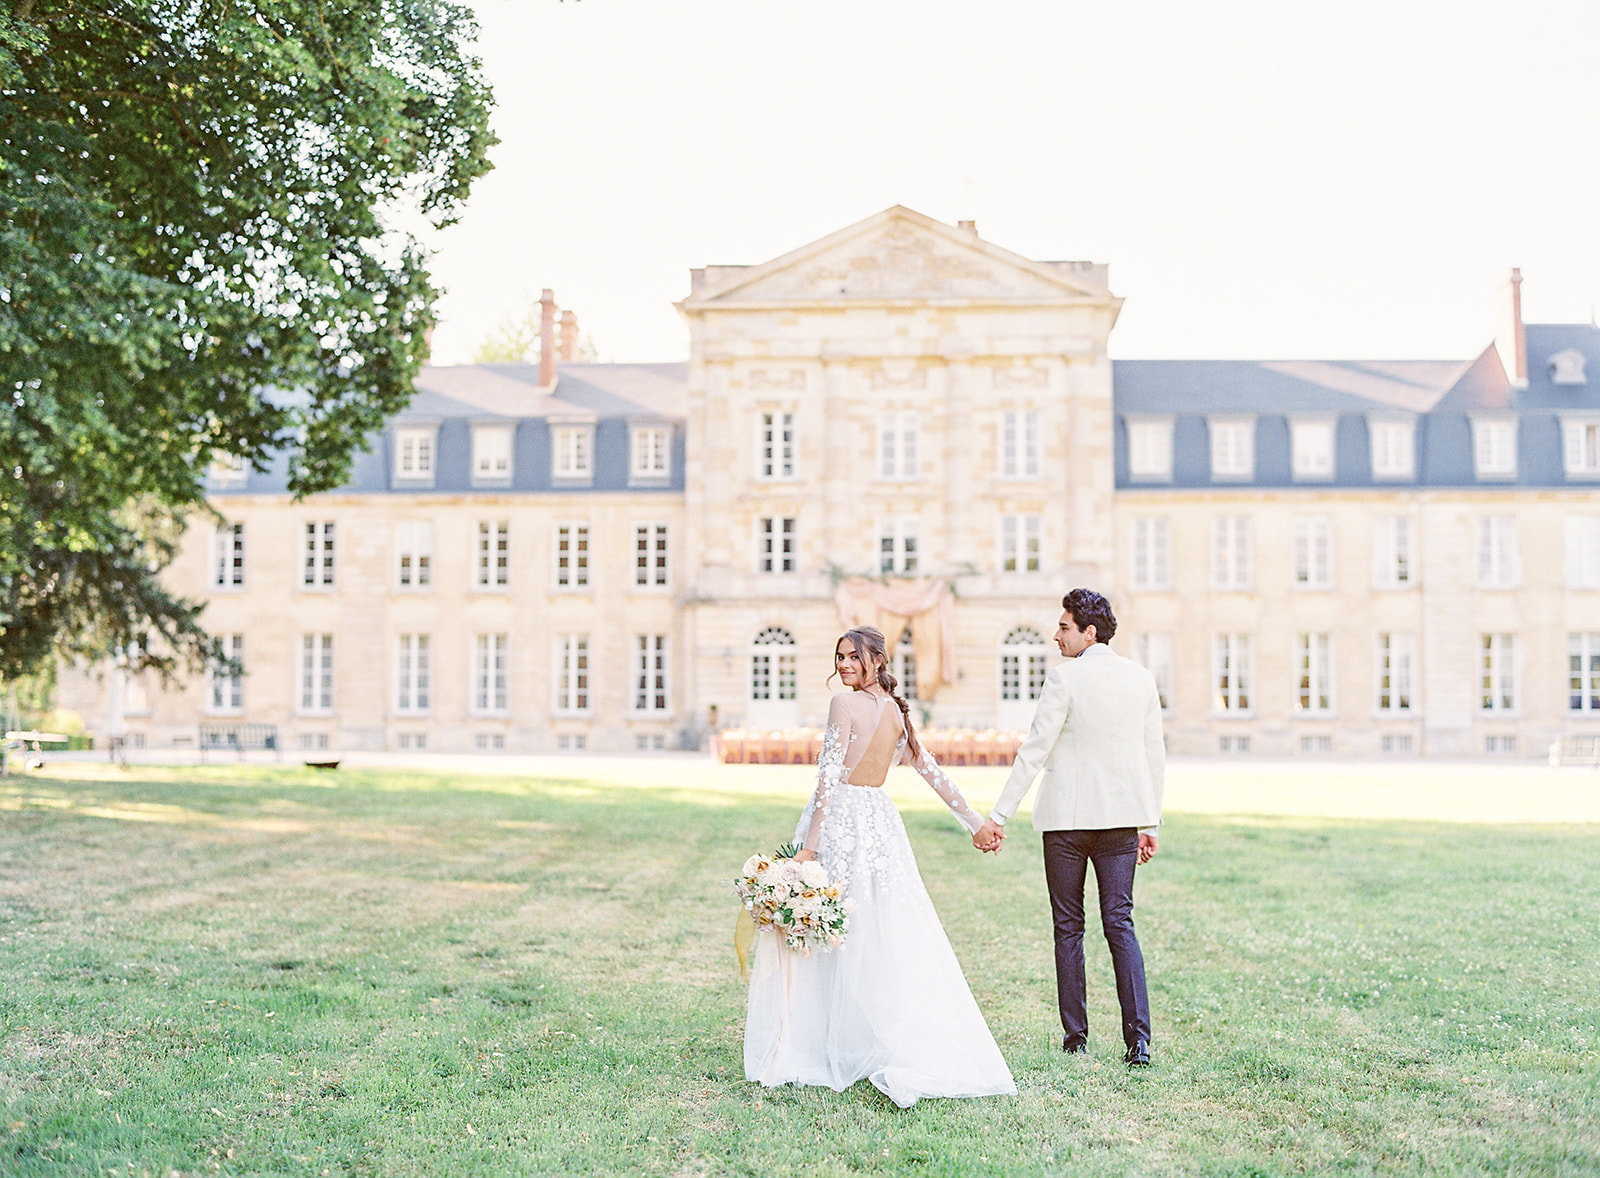 Chateau wedding in the  countryside of France